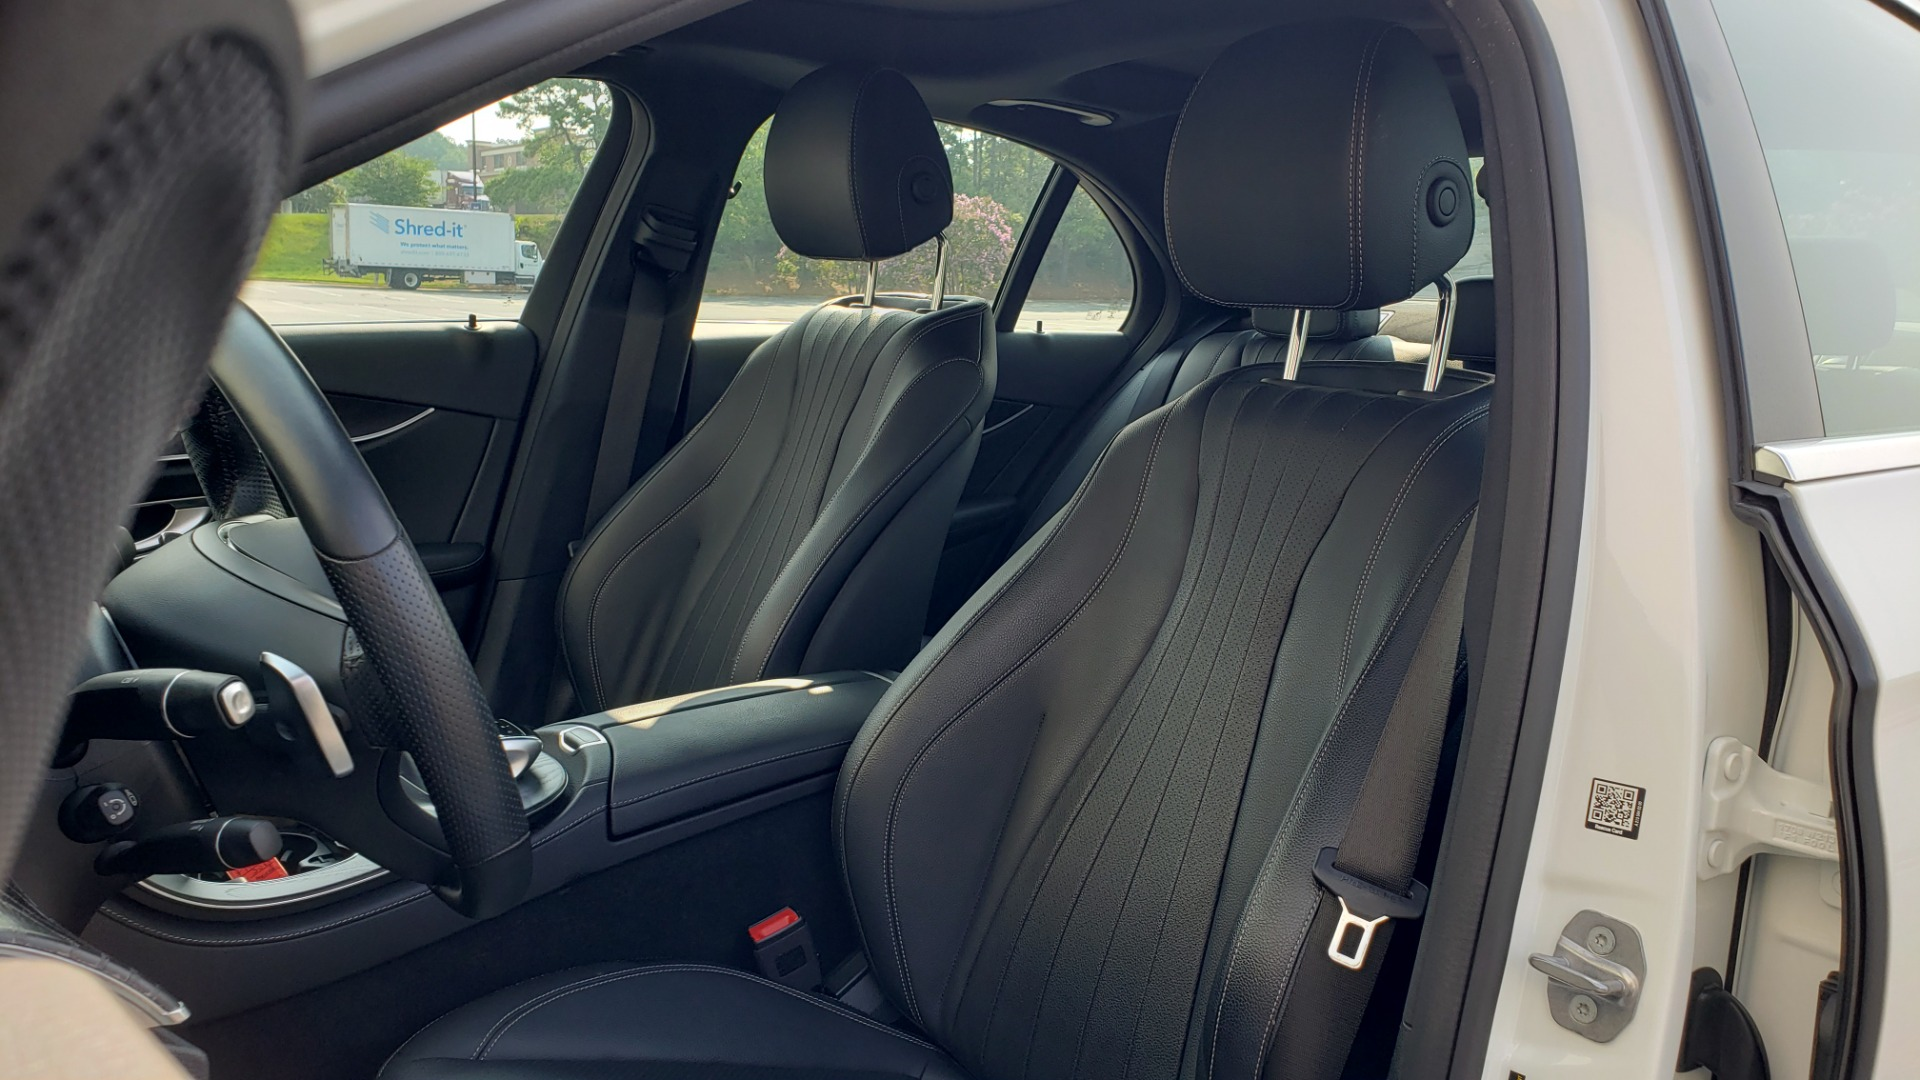 Used 2018 Mercedes-Benz E-CLASS E 300 4MATIC / PREMIUM / NAV / PANO-ROOF / BURMESTER / REARVIEW for sale $41,995 at Formula Imports in Charlotte NC 28227 31